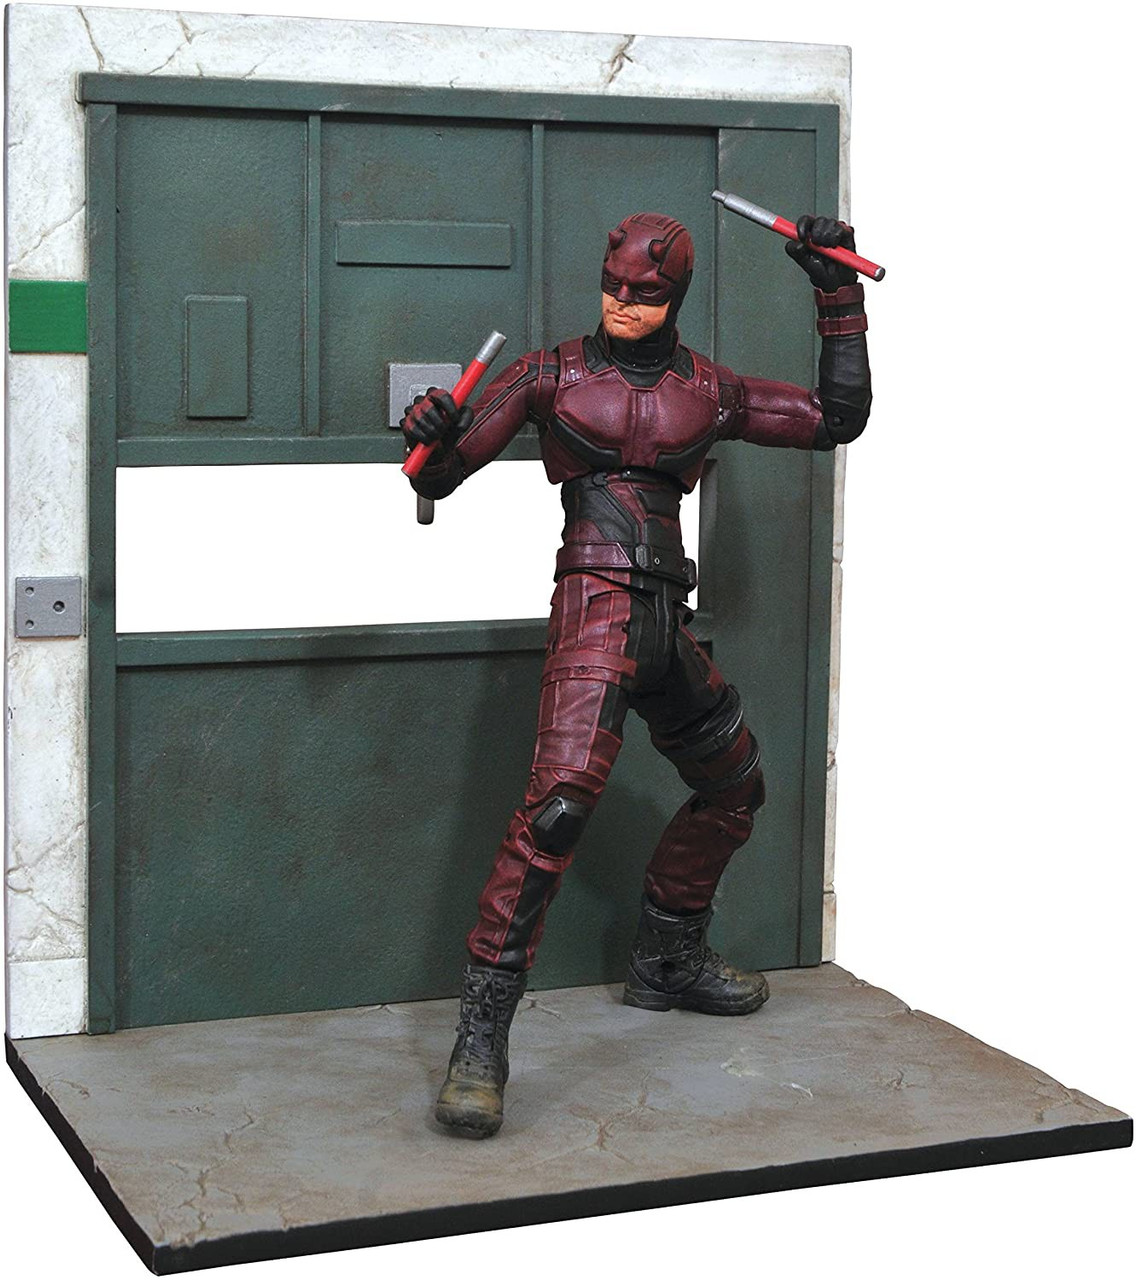 The First Netflix Daredevil Trailer Is Out: Marvel Daredevil Marvel Select Netflix Daredevil 7 Action